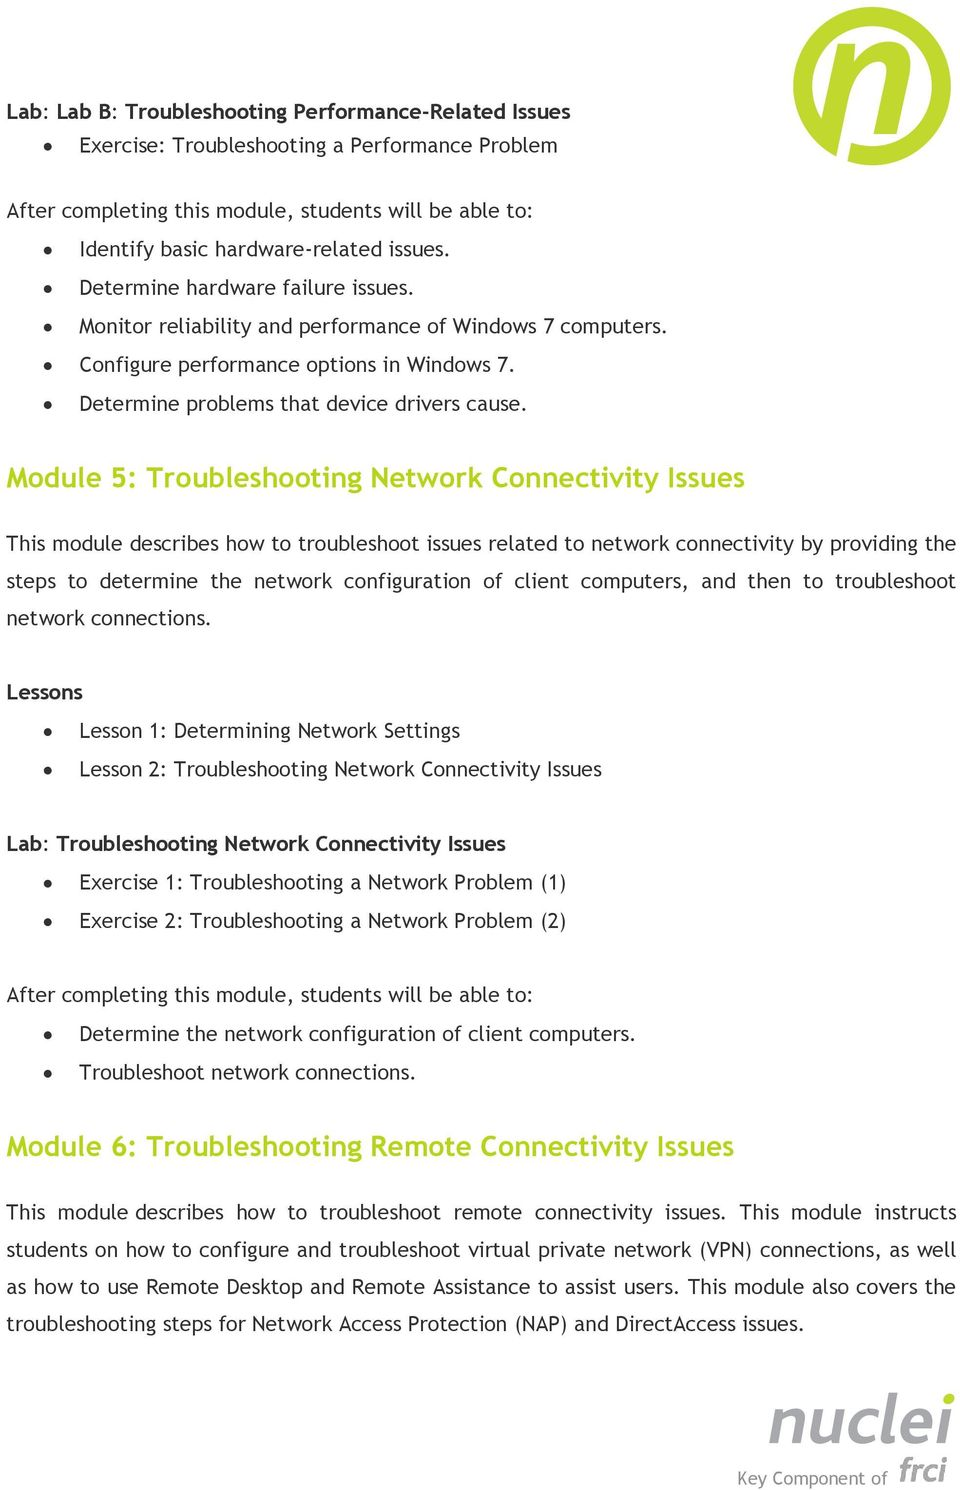 Module 5: Troubleshooting Network Connectivity Issues This module describes how to troubleshoot issues related to network connectivity by providing the steps to determine the network configuration of